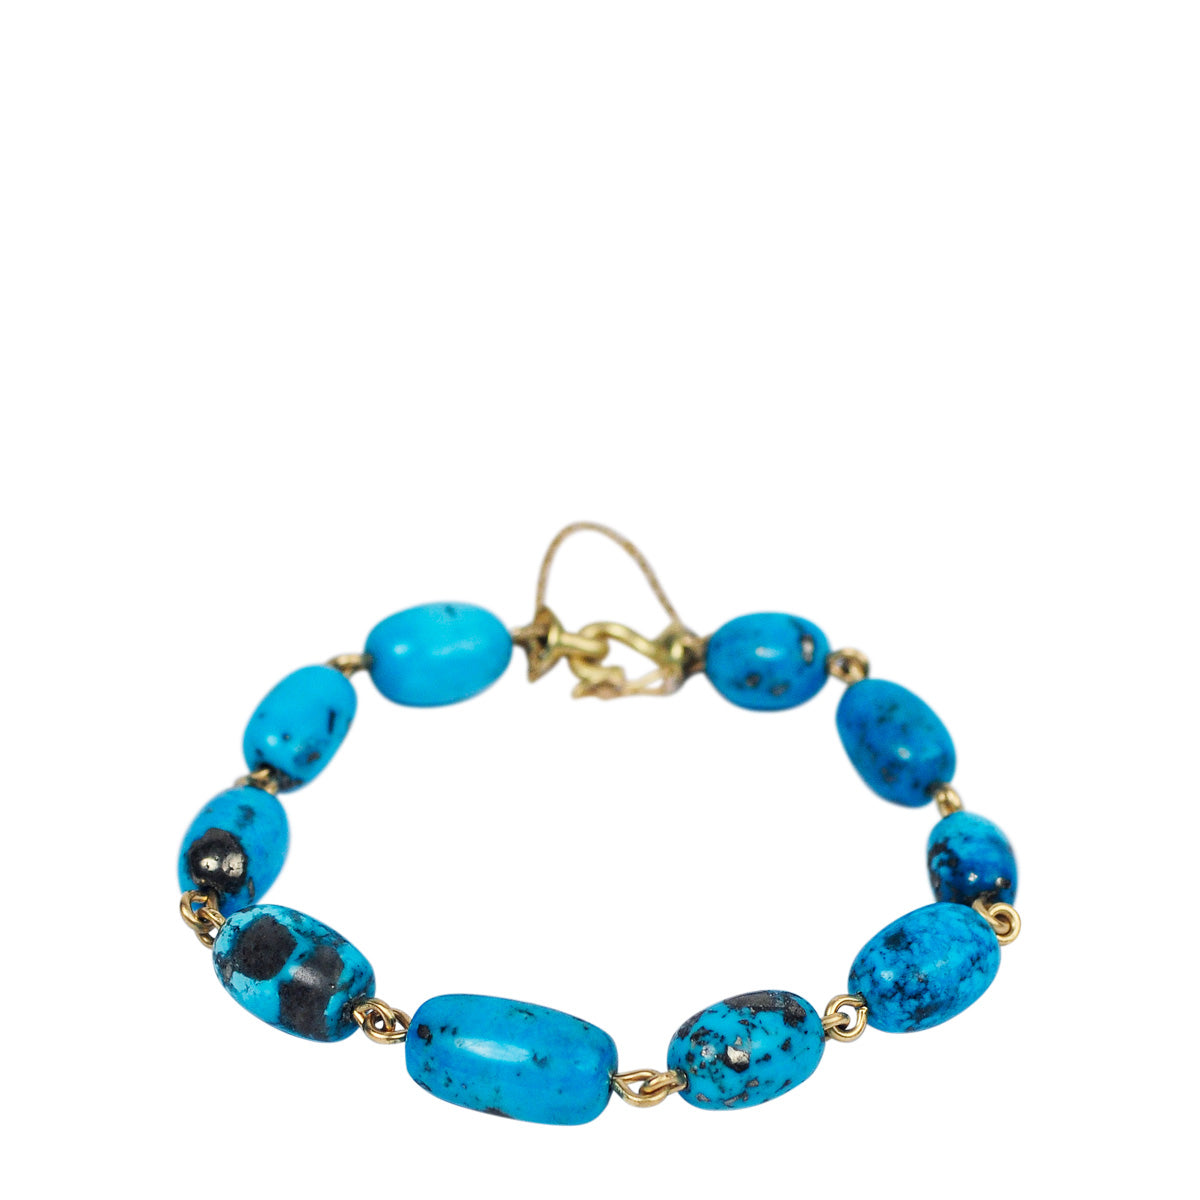 18K Gold Persian Square Turquoise Beaded Bracelet on Wire